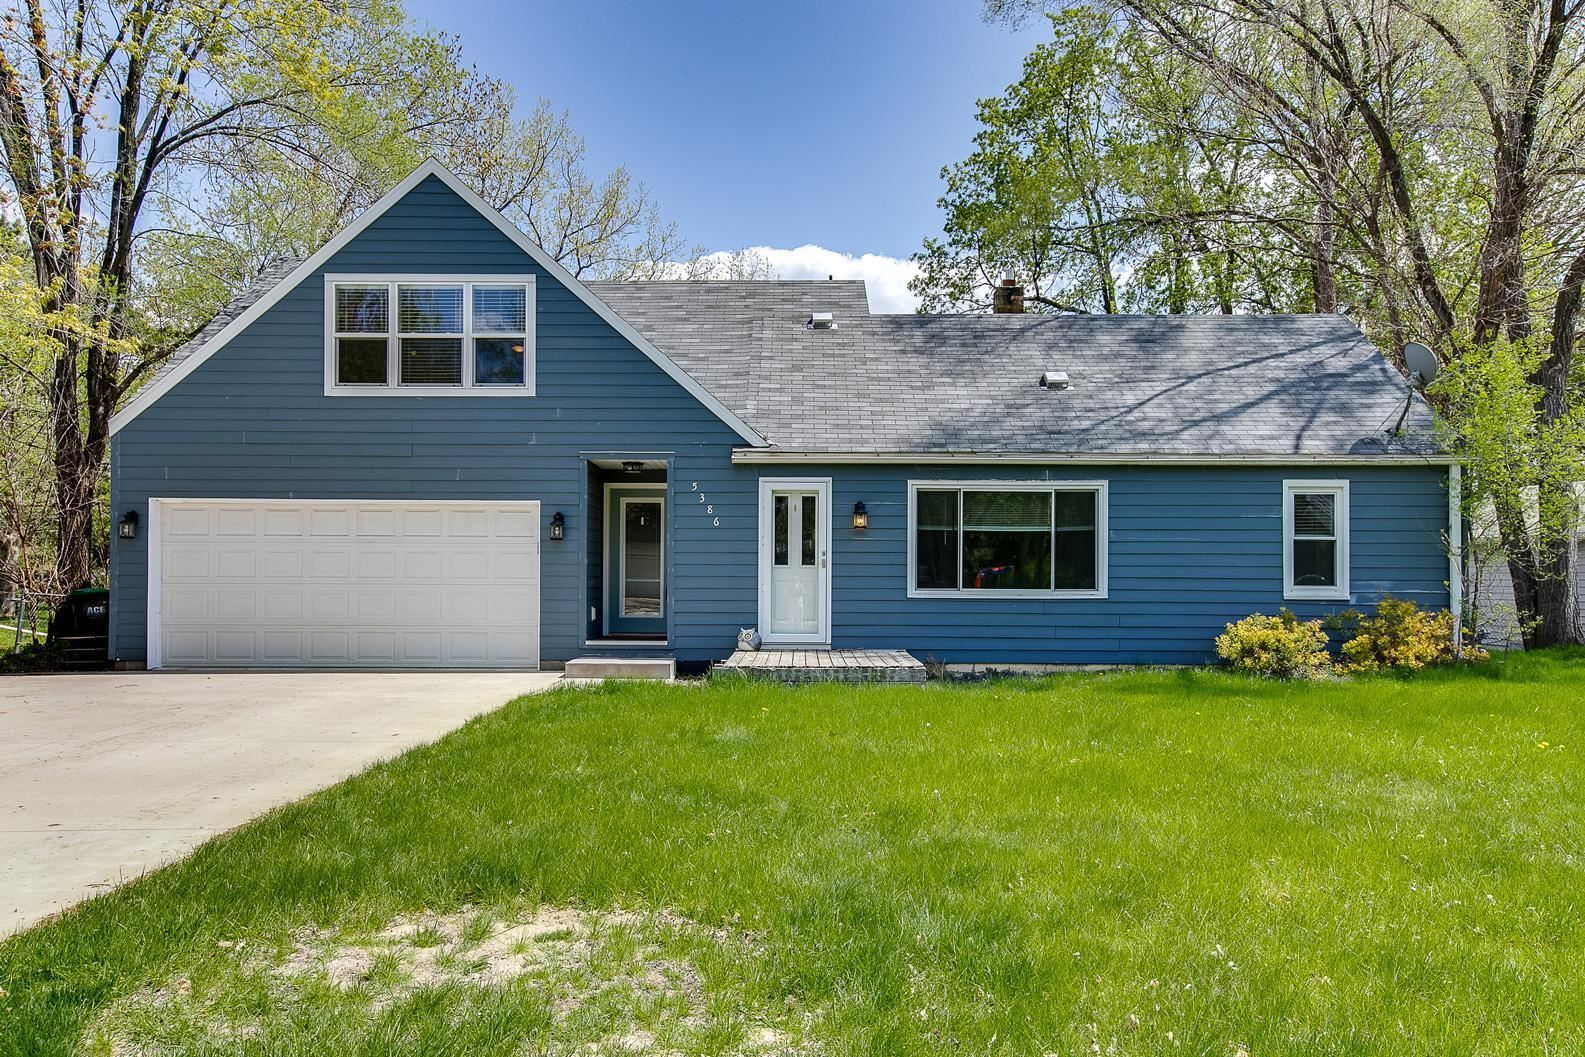 5386 Quincy Street, Mounds View, MN 55112 - MLS#: 5754452